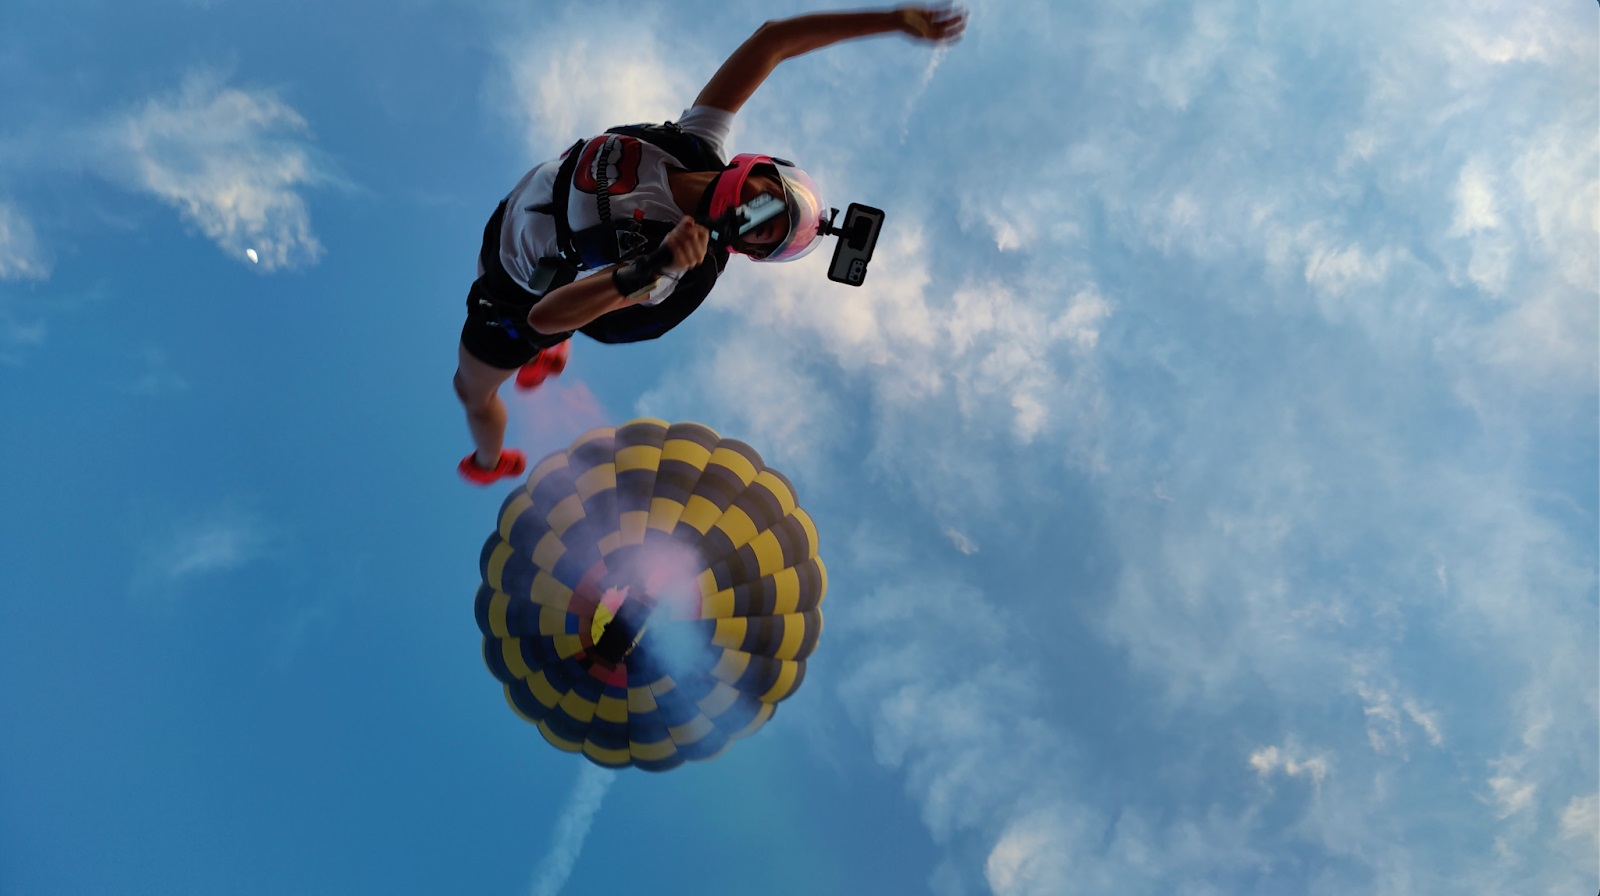 oneplus skydiving action